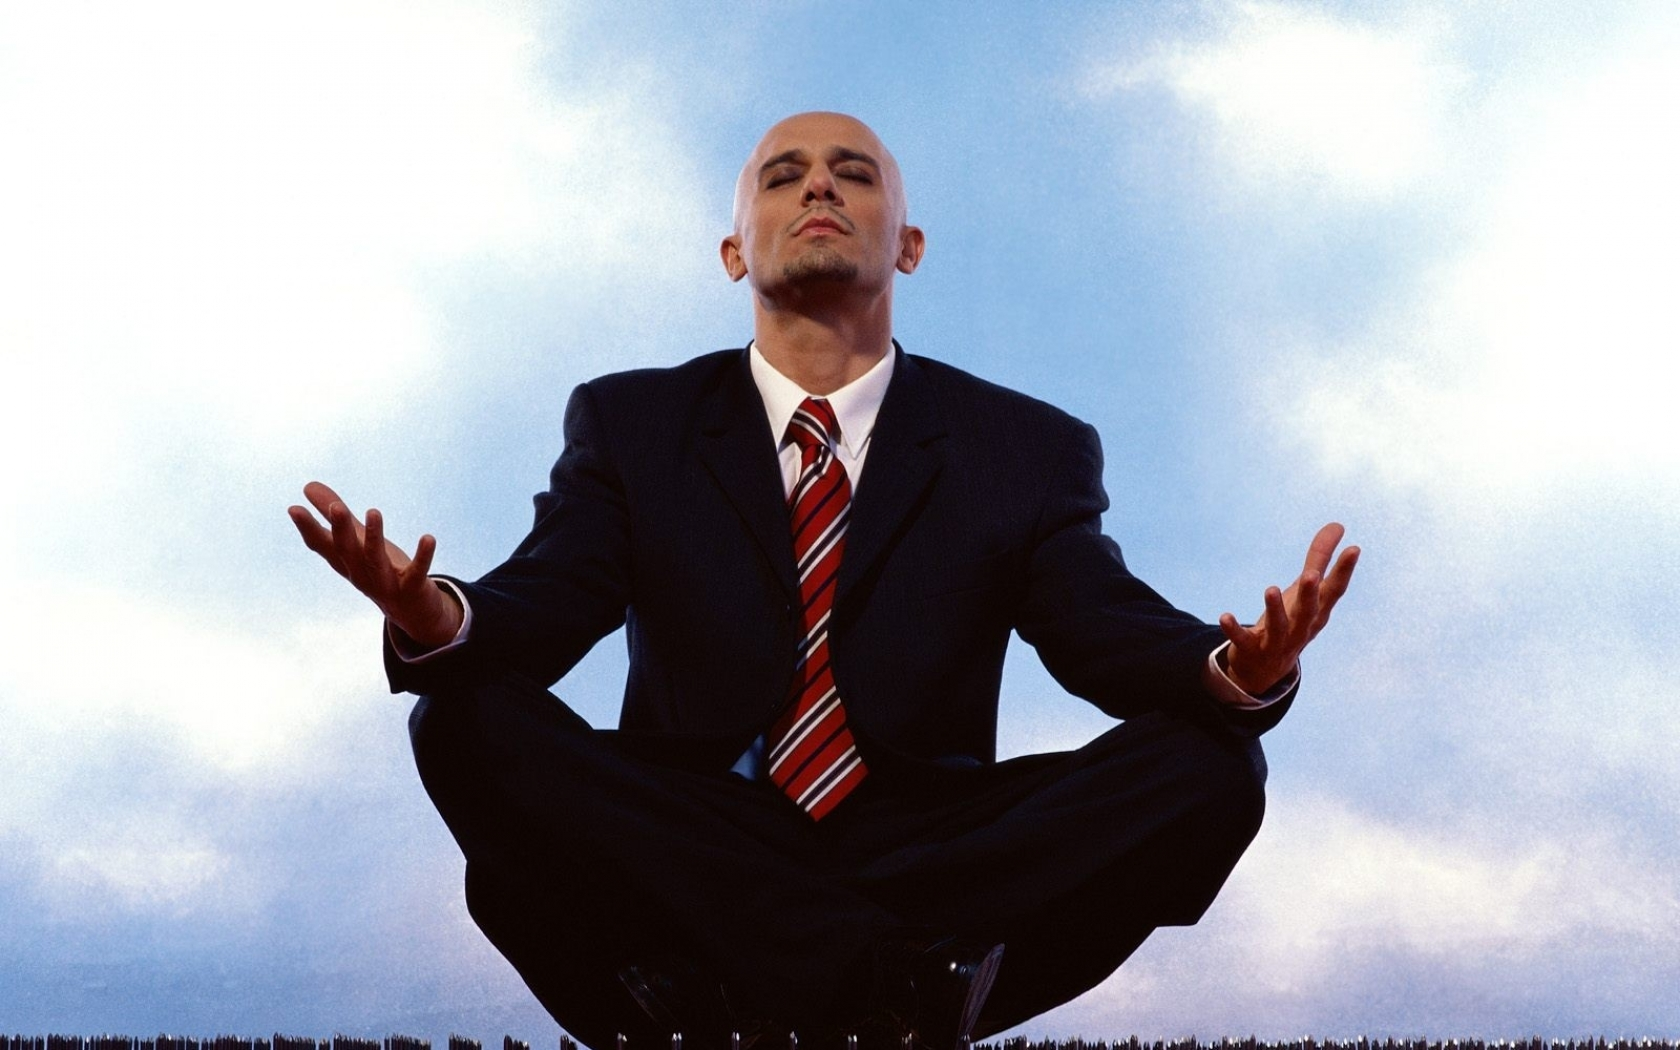 zen_yoga_business_meditation_legs_crossed_lotus_position_Wallpaper.jpg